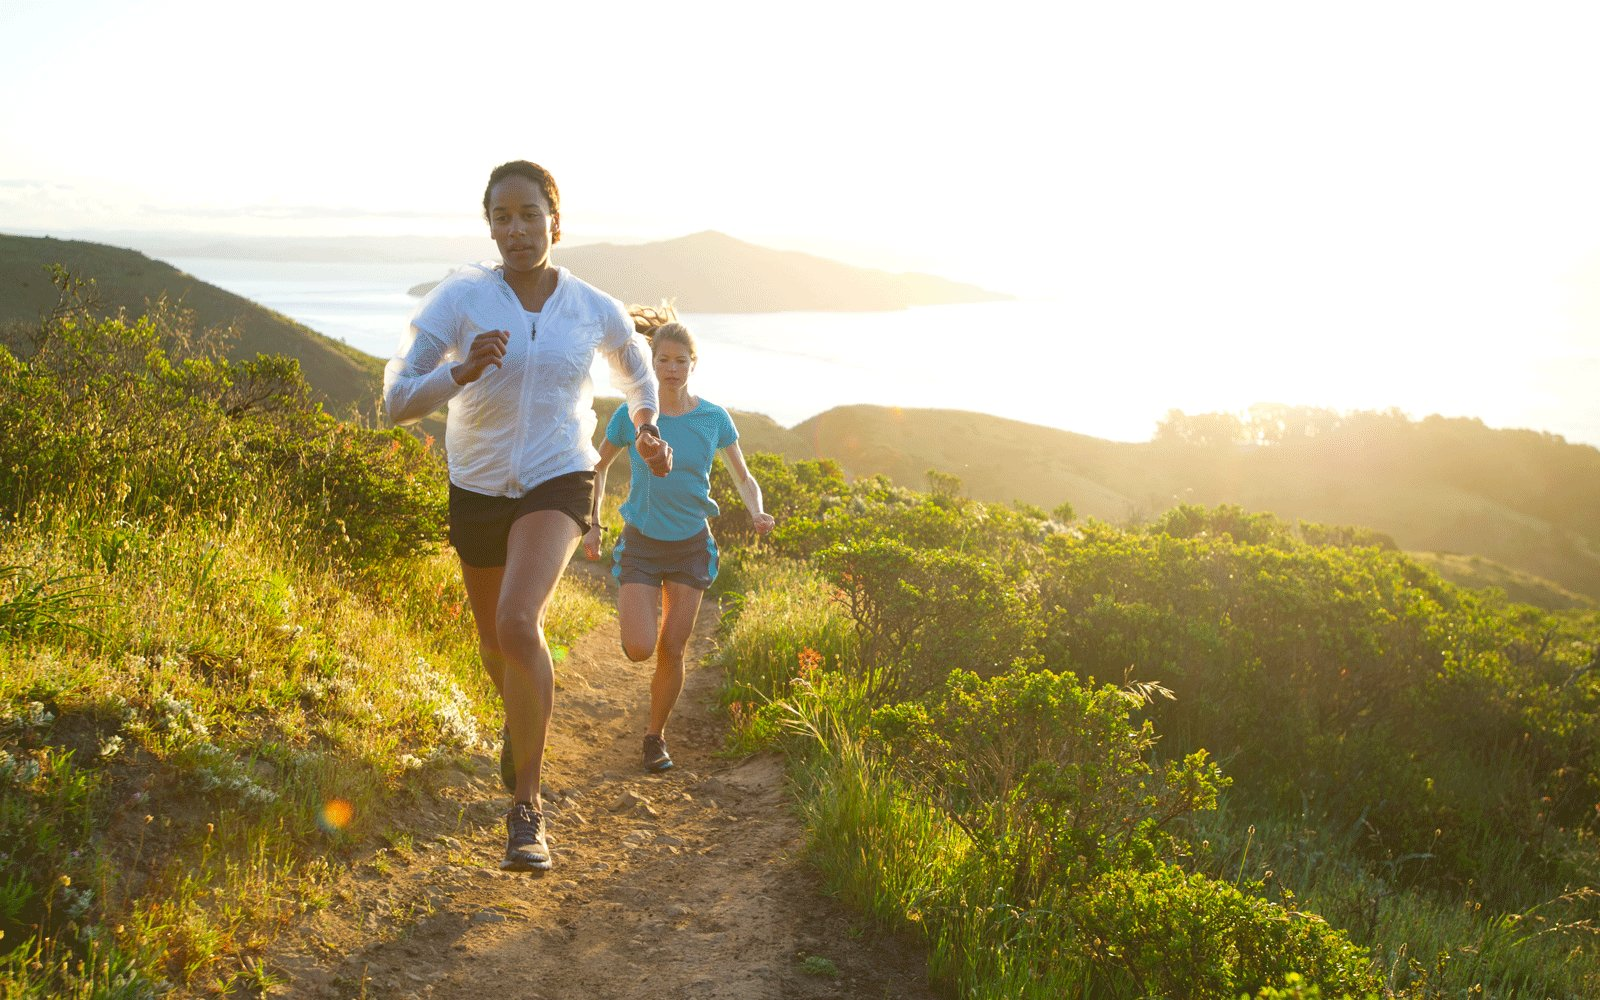 Exercise Makes You Happier Than Money, Yale and Oxford Research Suggests